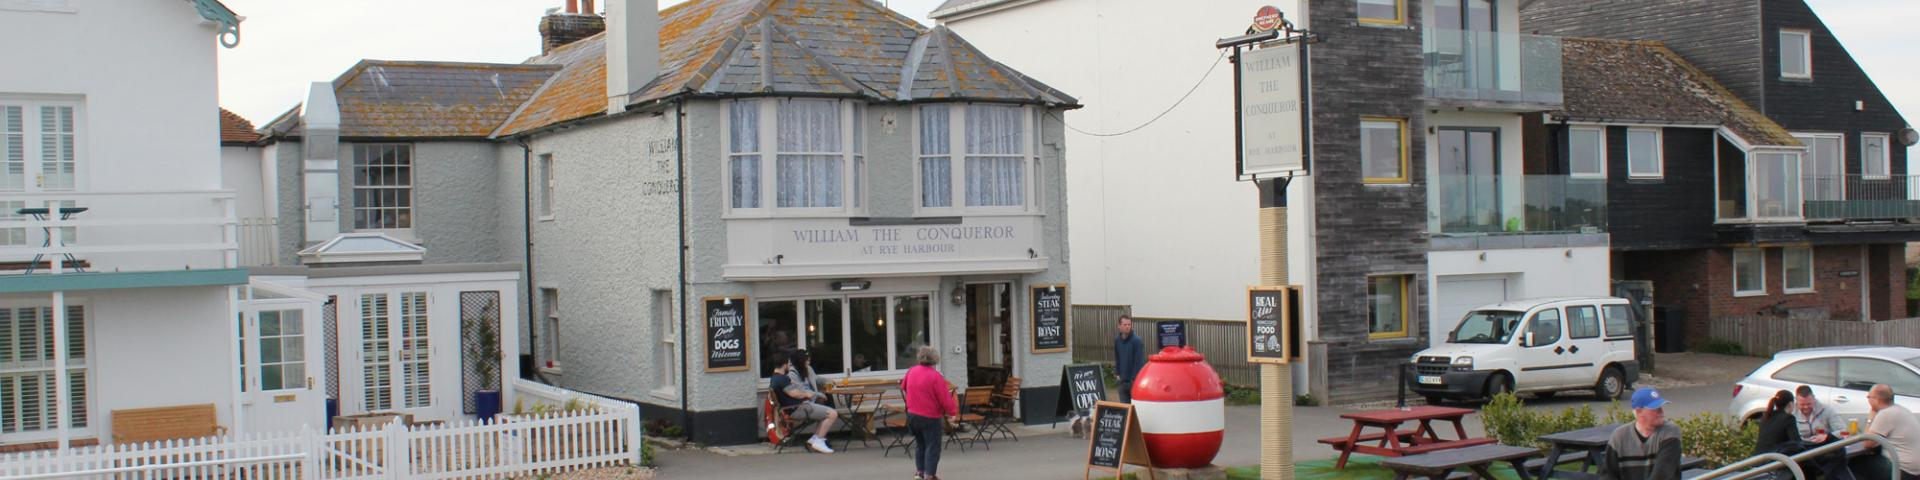 William the Conqueror, Rye